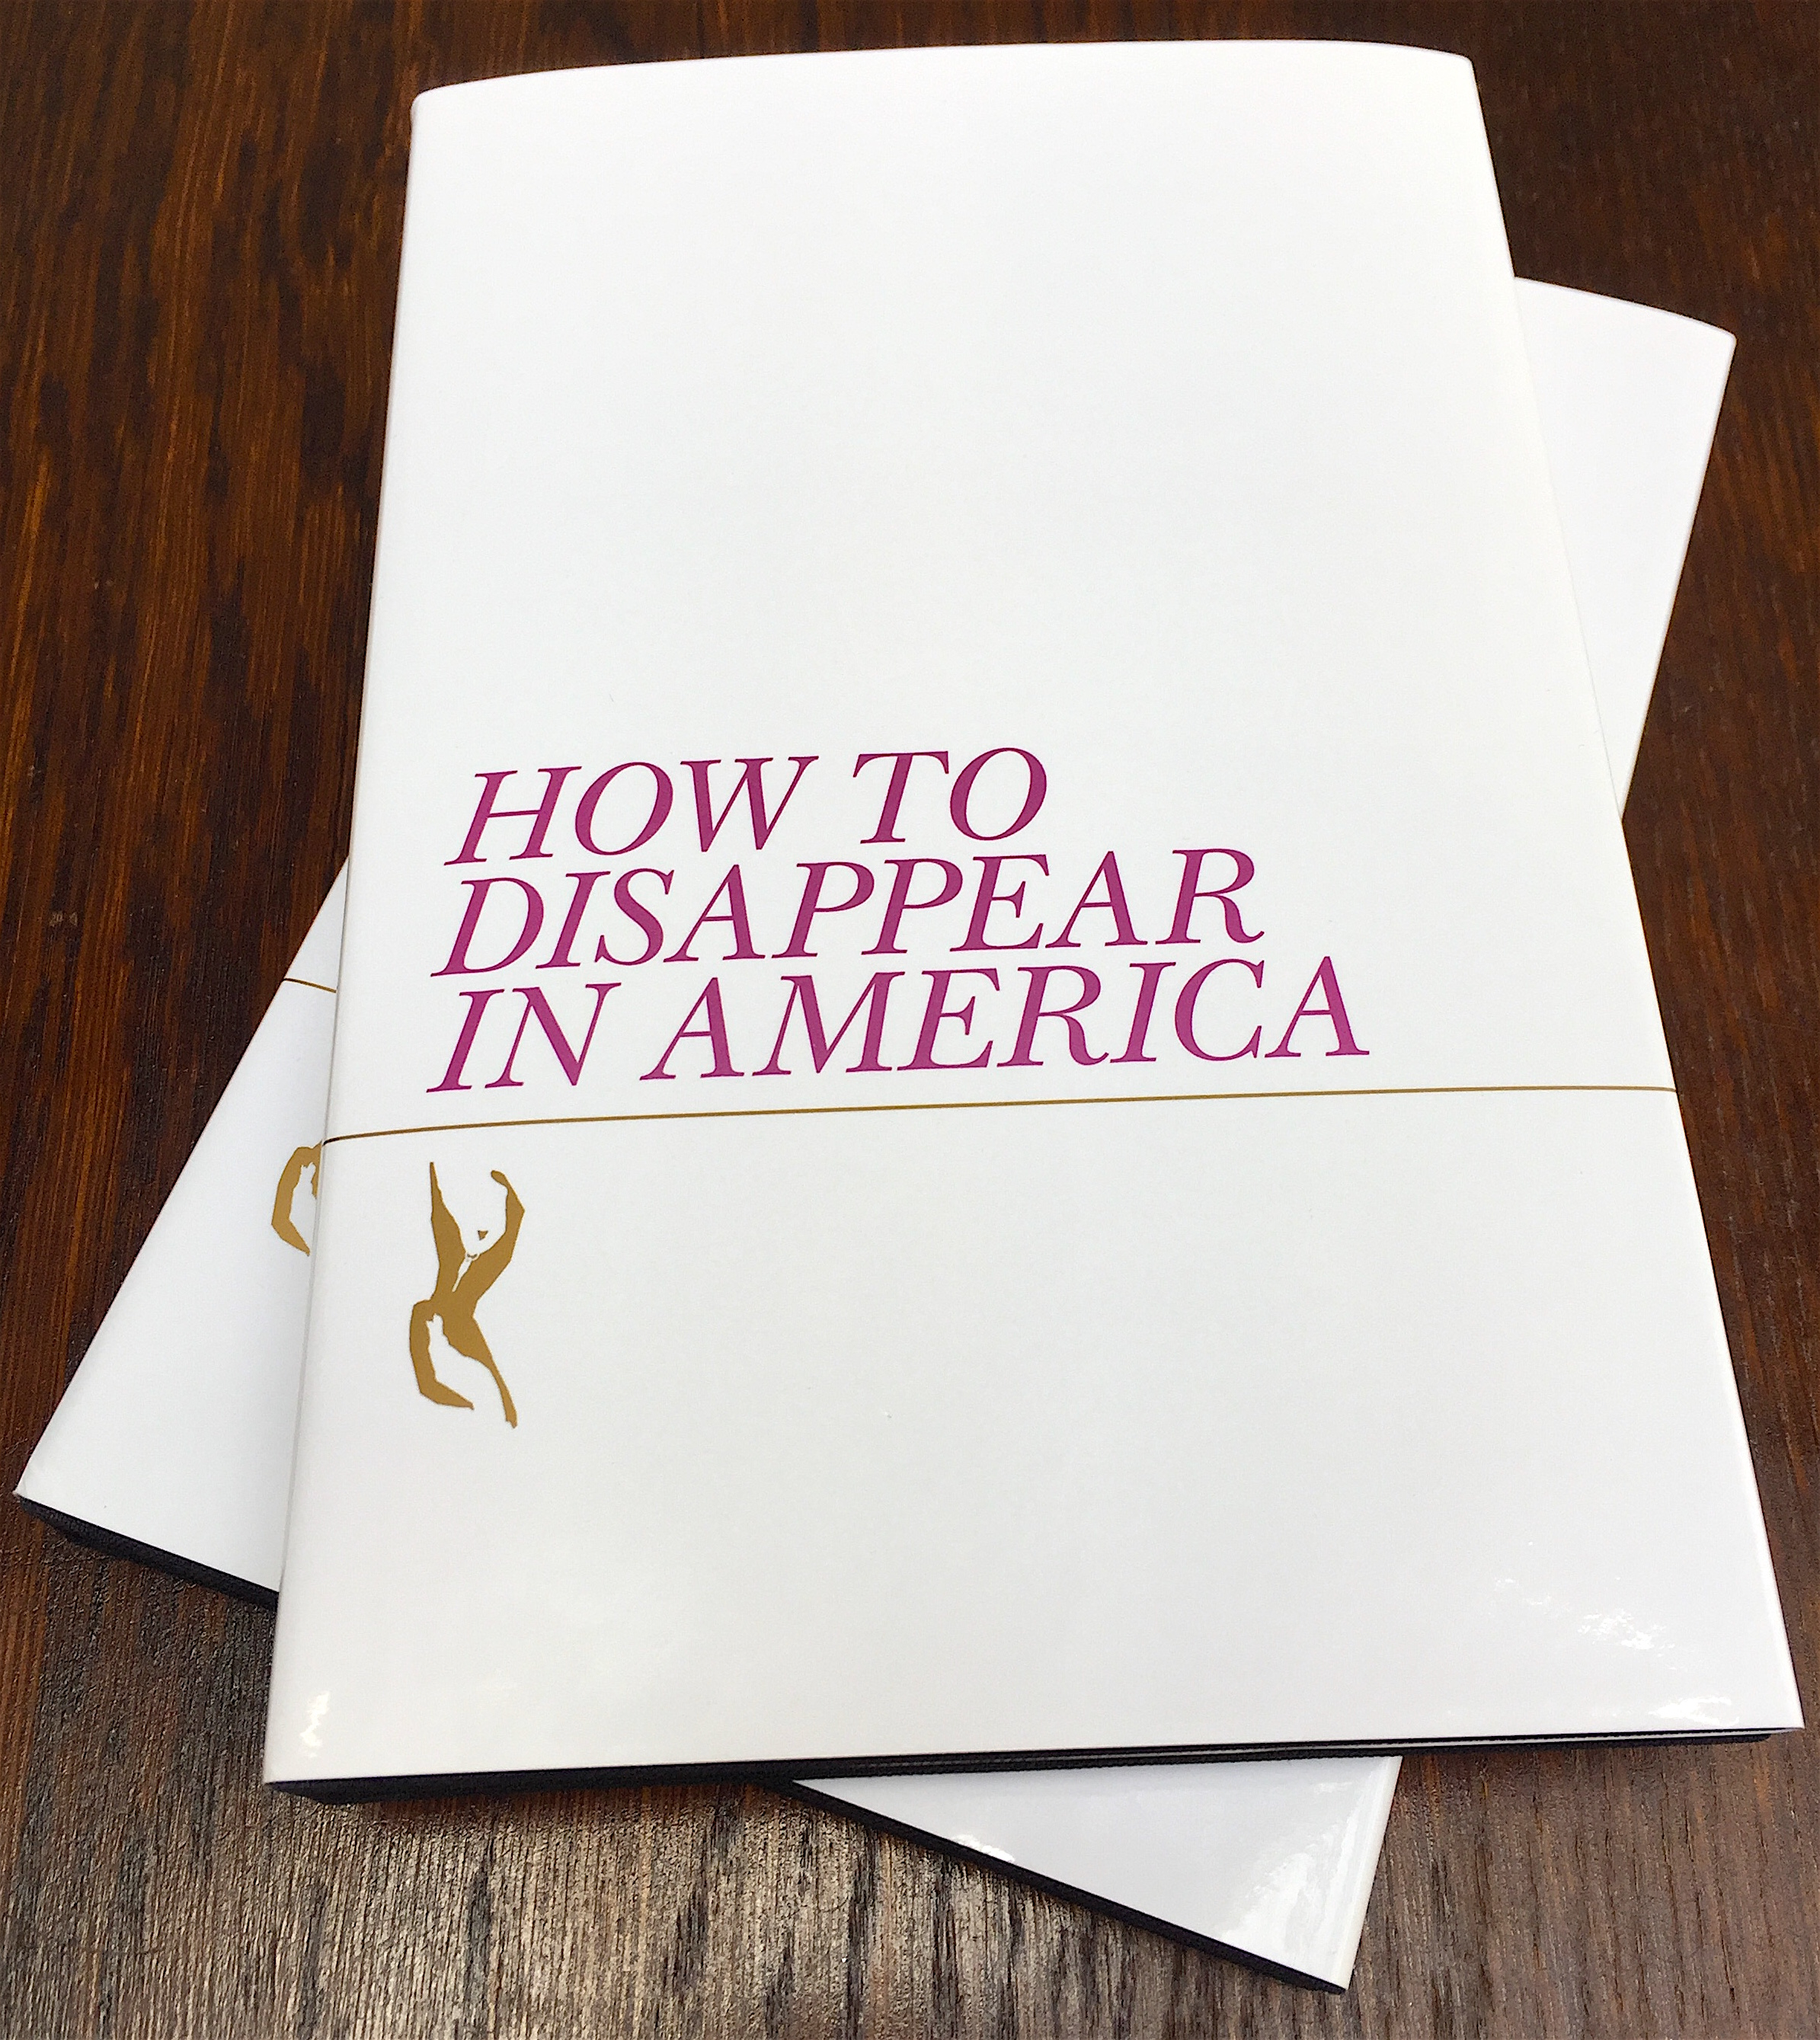 How to Disappear in America (White Jacket)